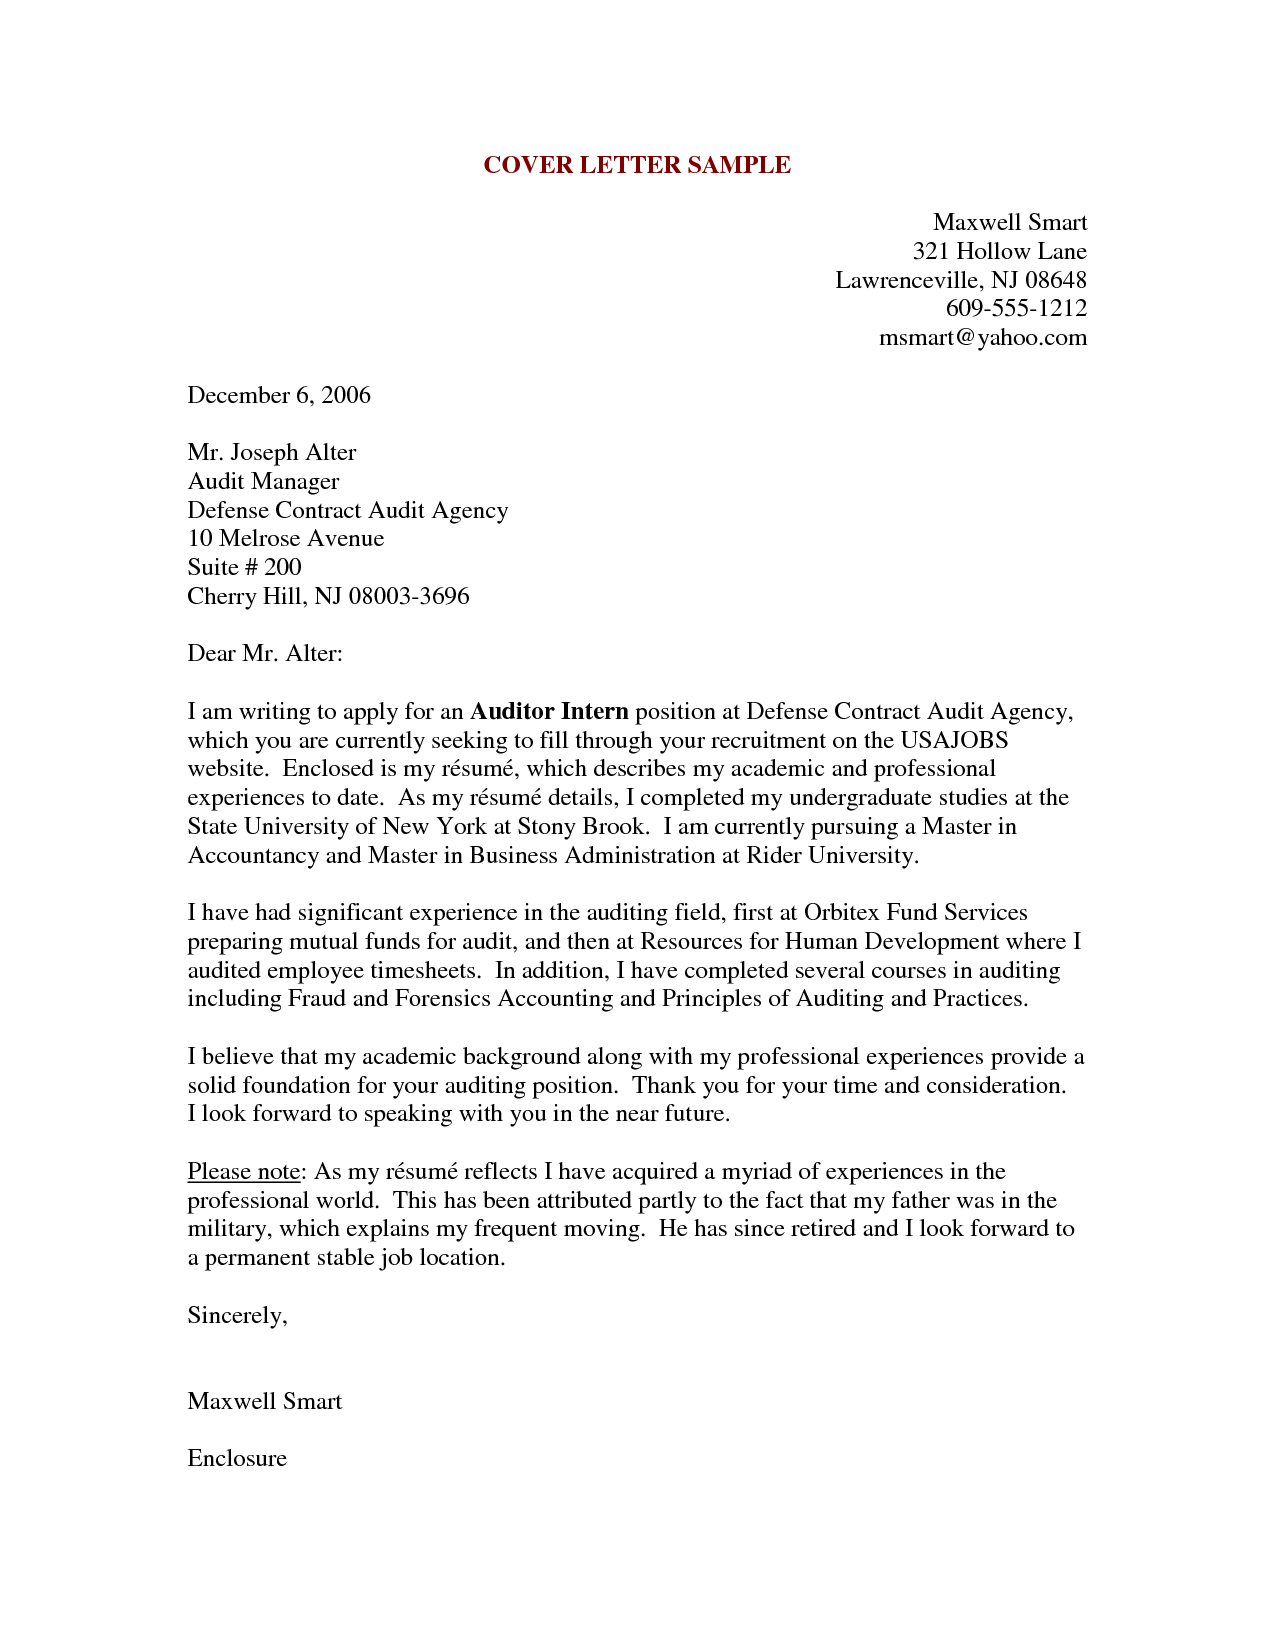 Sample Cover Letter Doc Tips On Writing A Persuasive Cover Letter Character  Pinterest